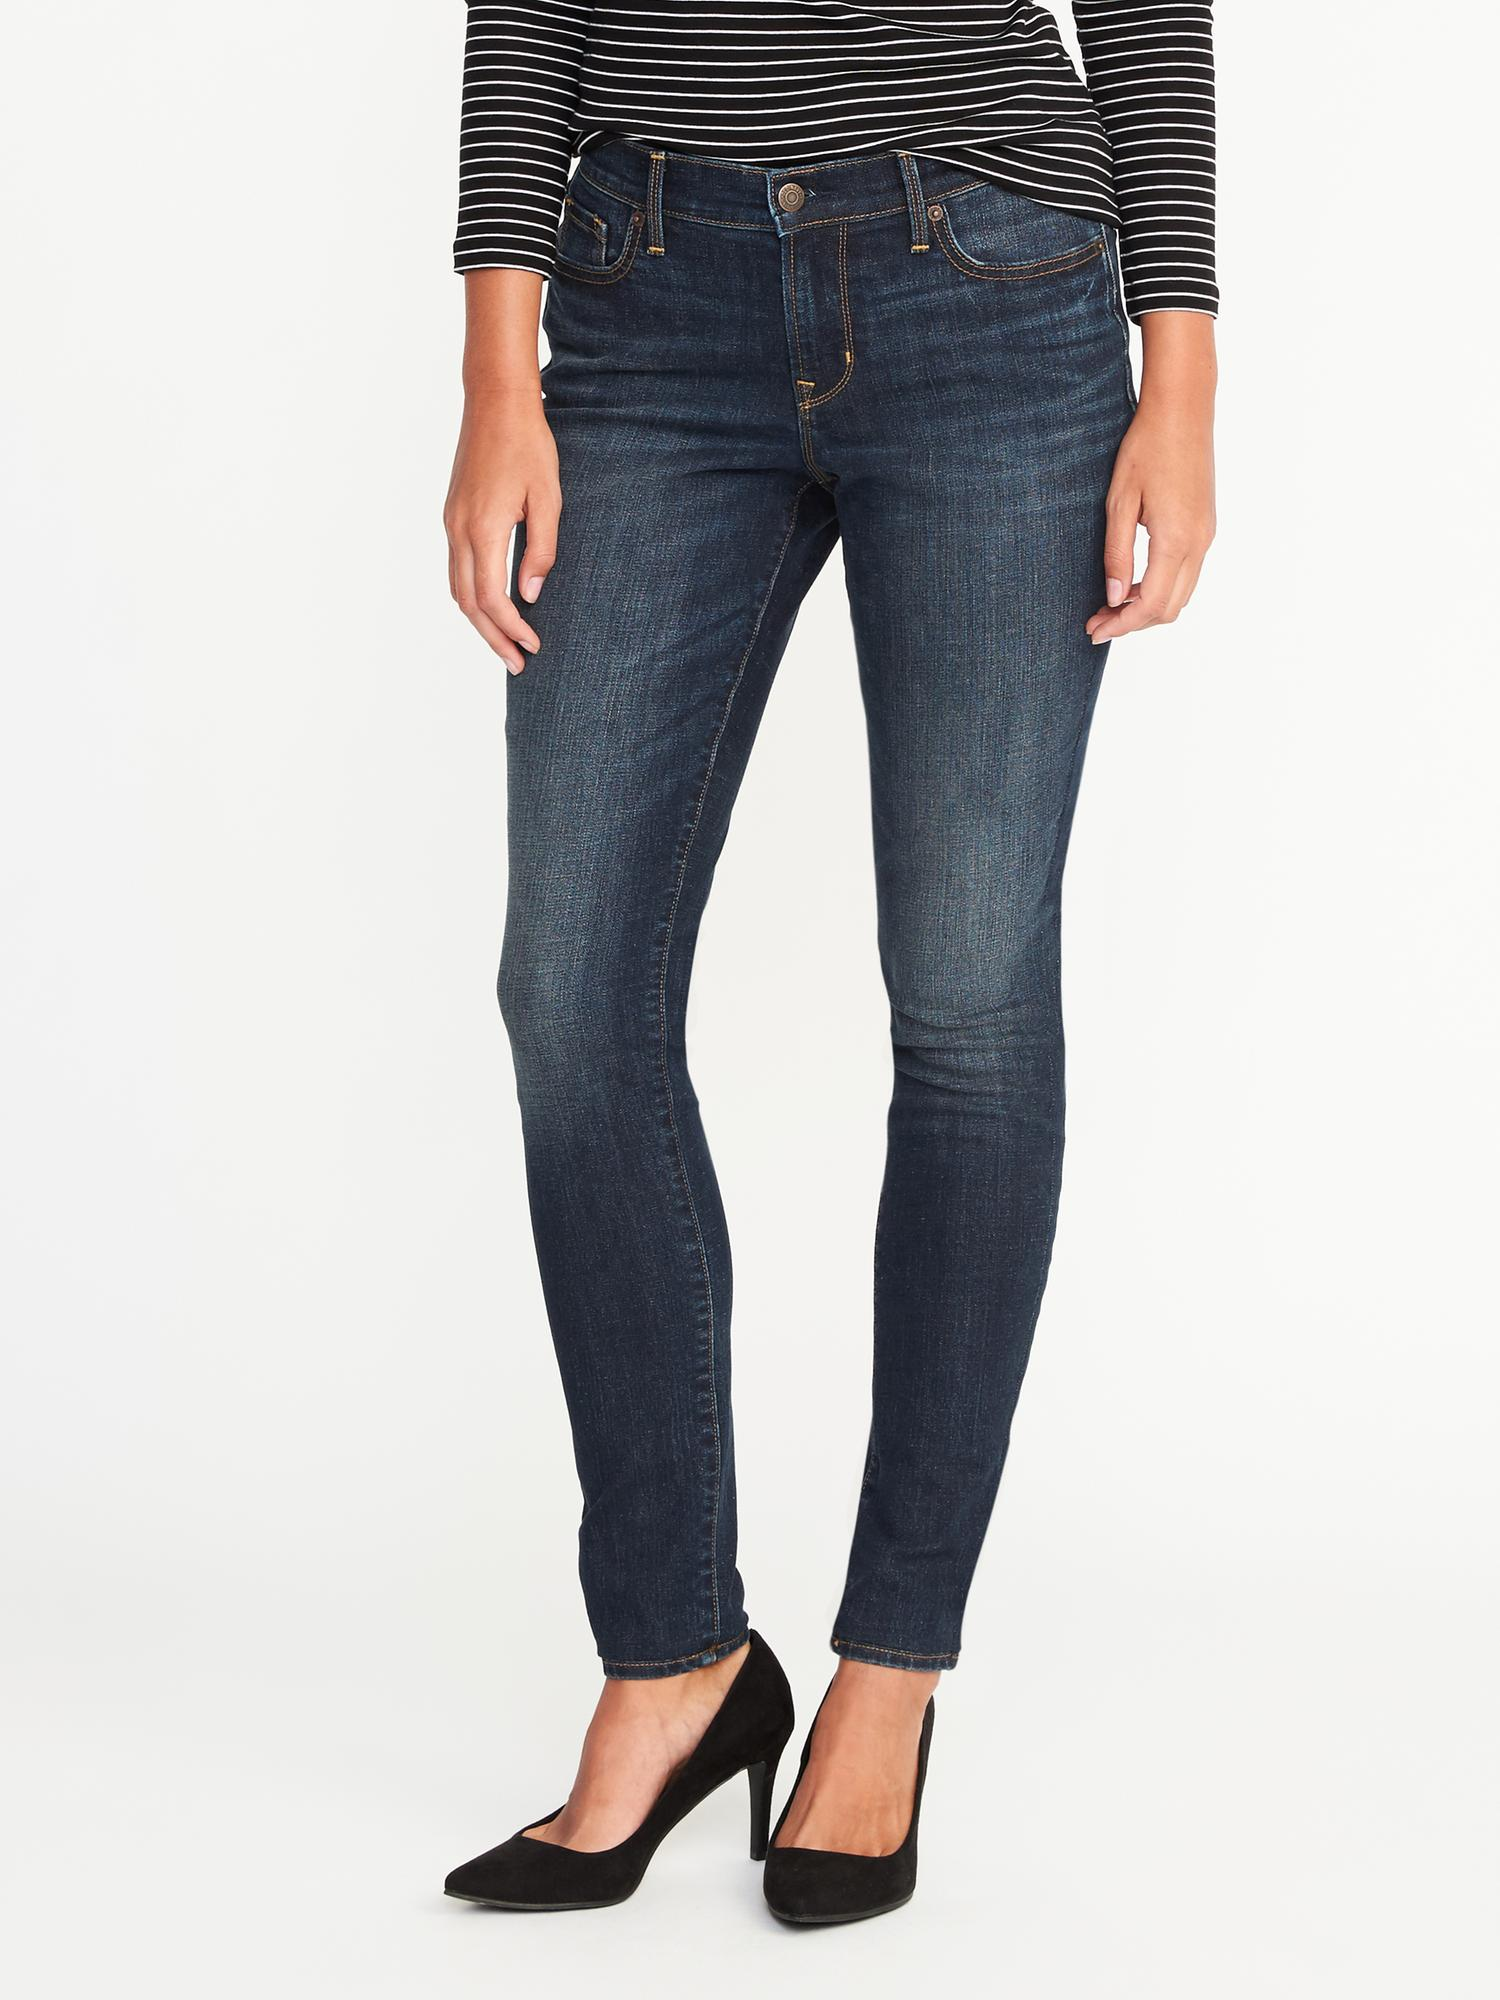 4f34d3f589 Mid-Rise Curvy Skinny Jeans for Women | Old Navy